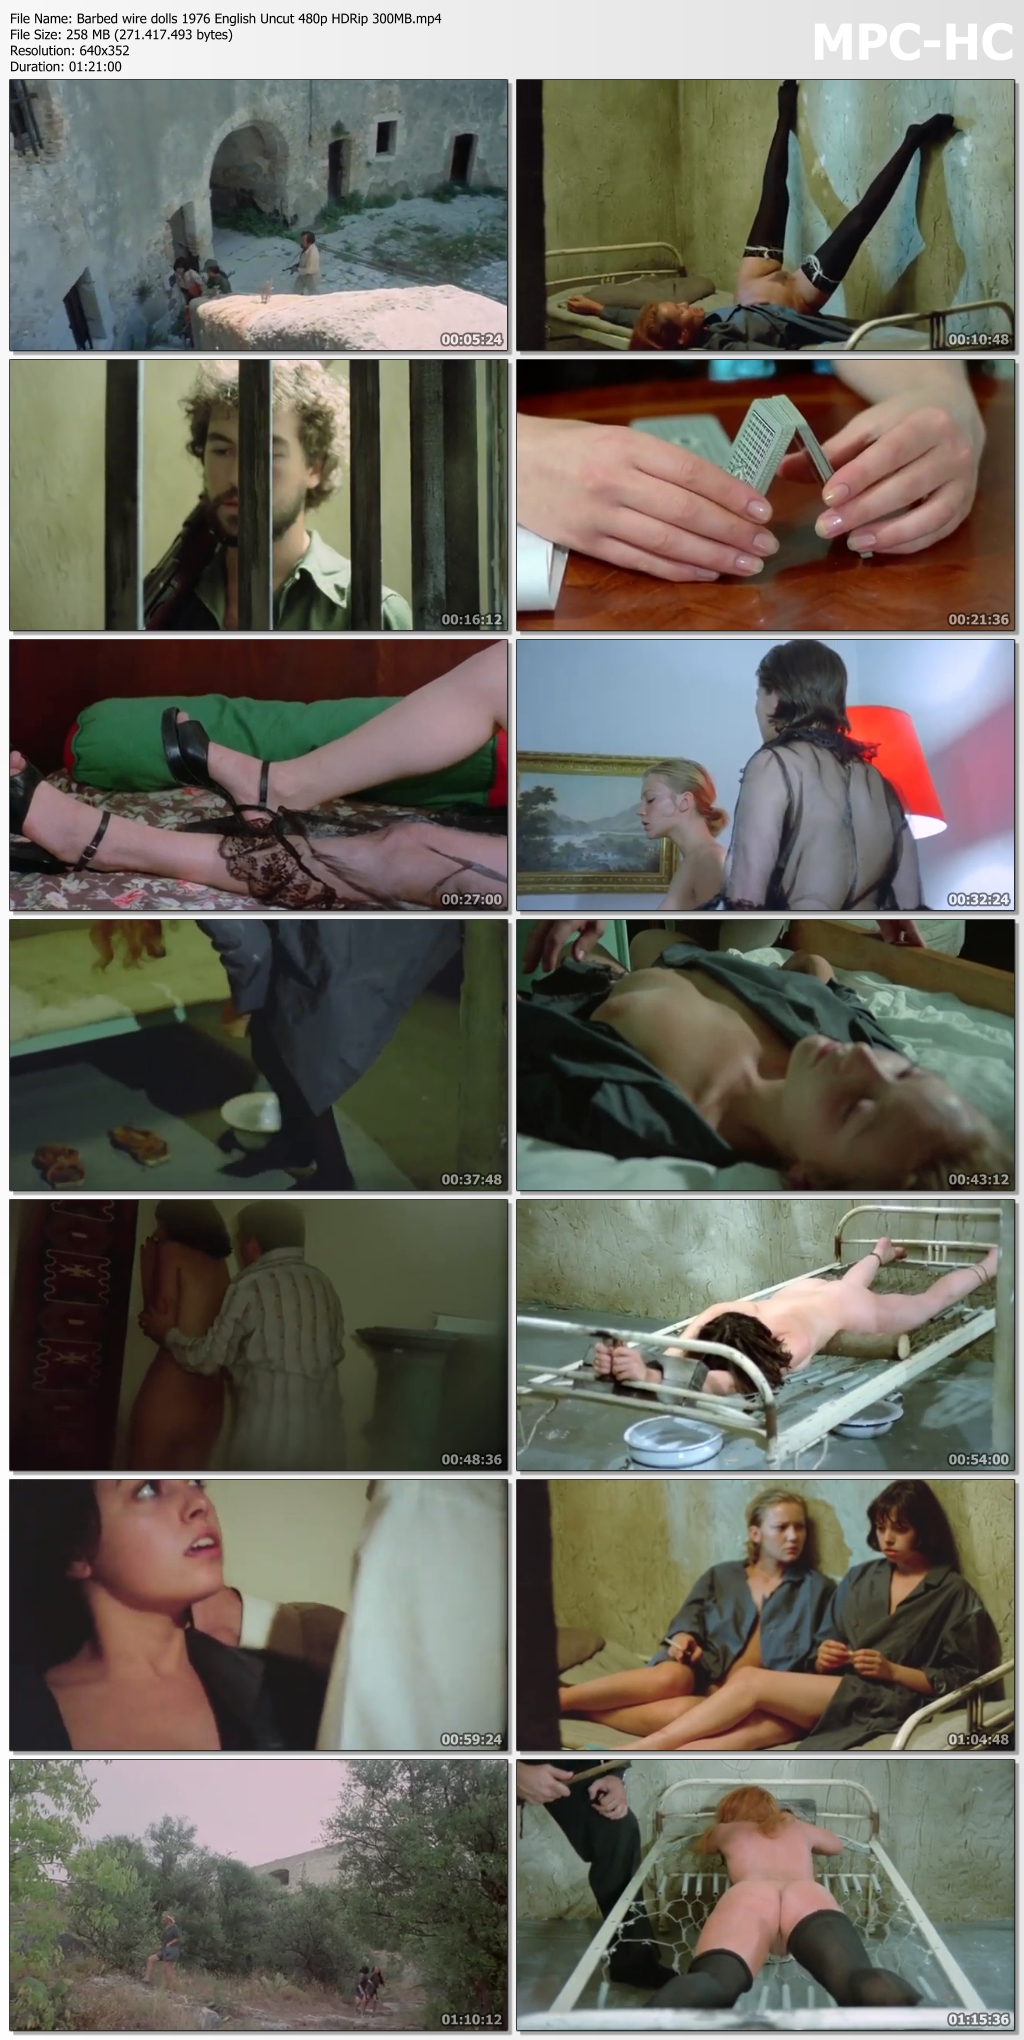 Barbed-wire-dolls-1976-English-Uncut-480p-HDRip-300-MB-mp4-thumbs